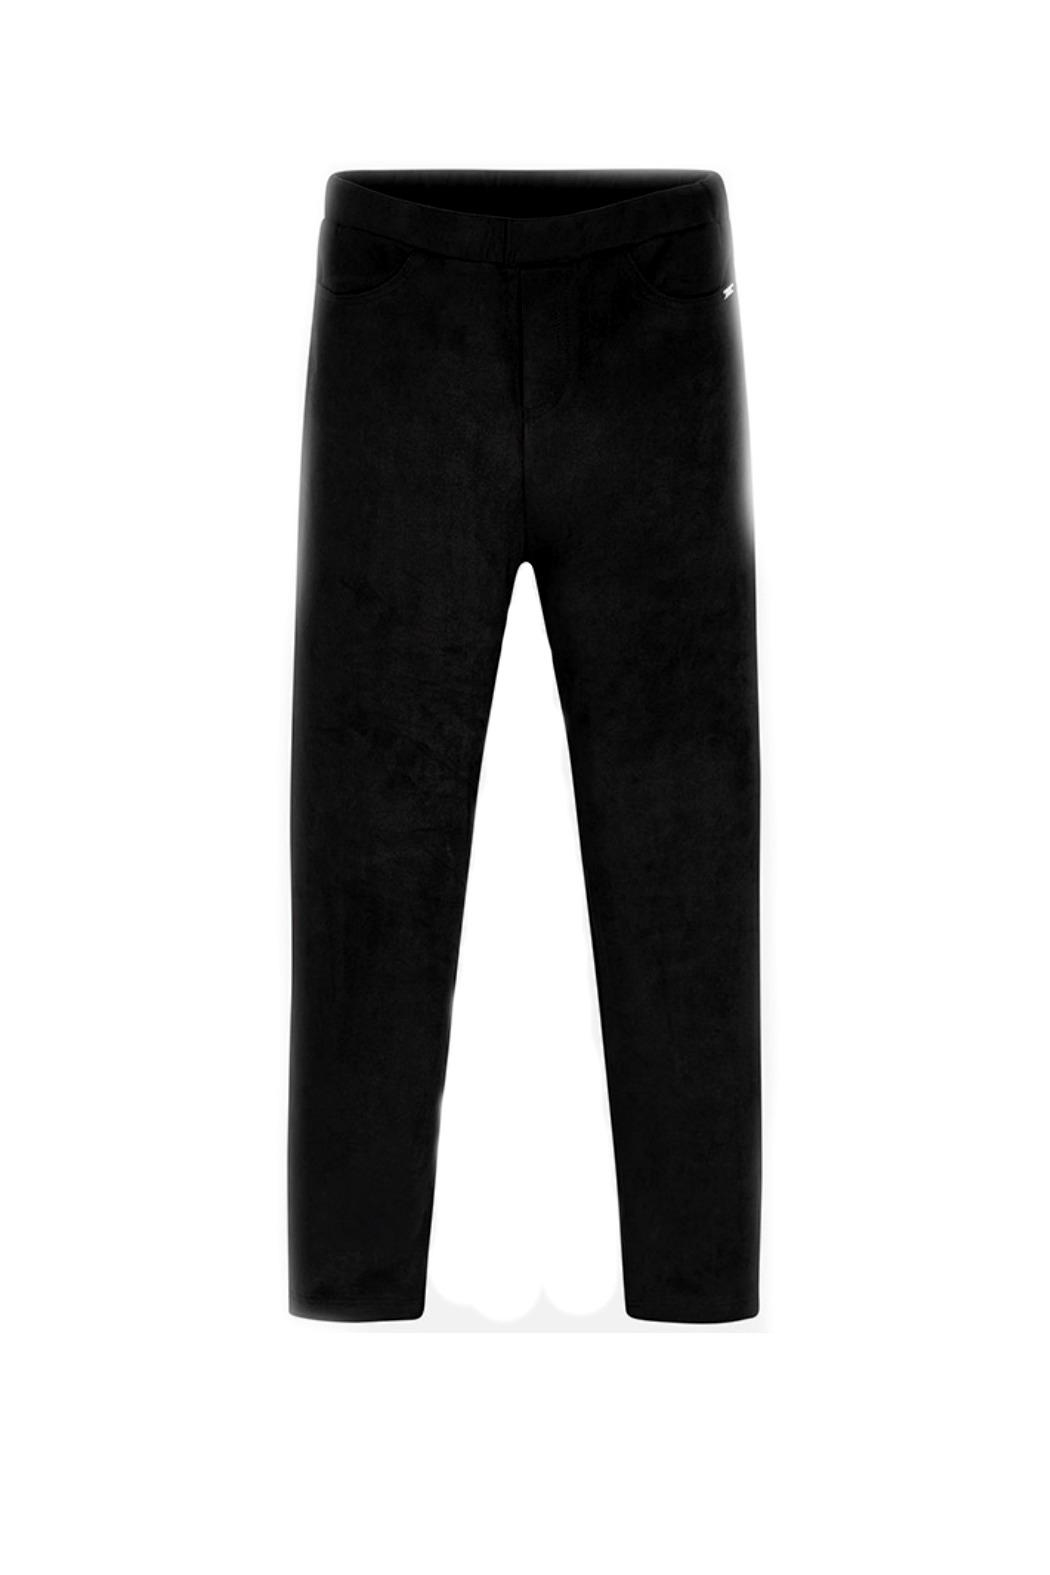 Mayoral Girls Faux-Suede-Charcoal Leggings - Main Image